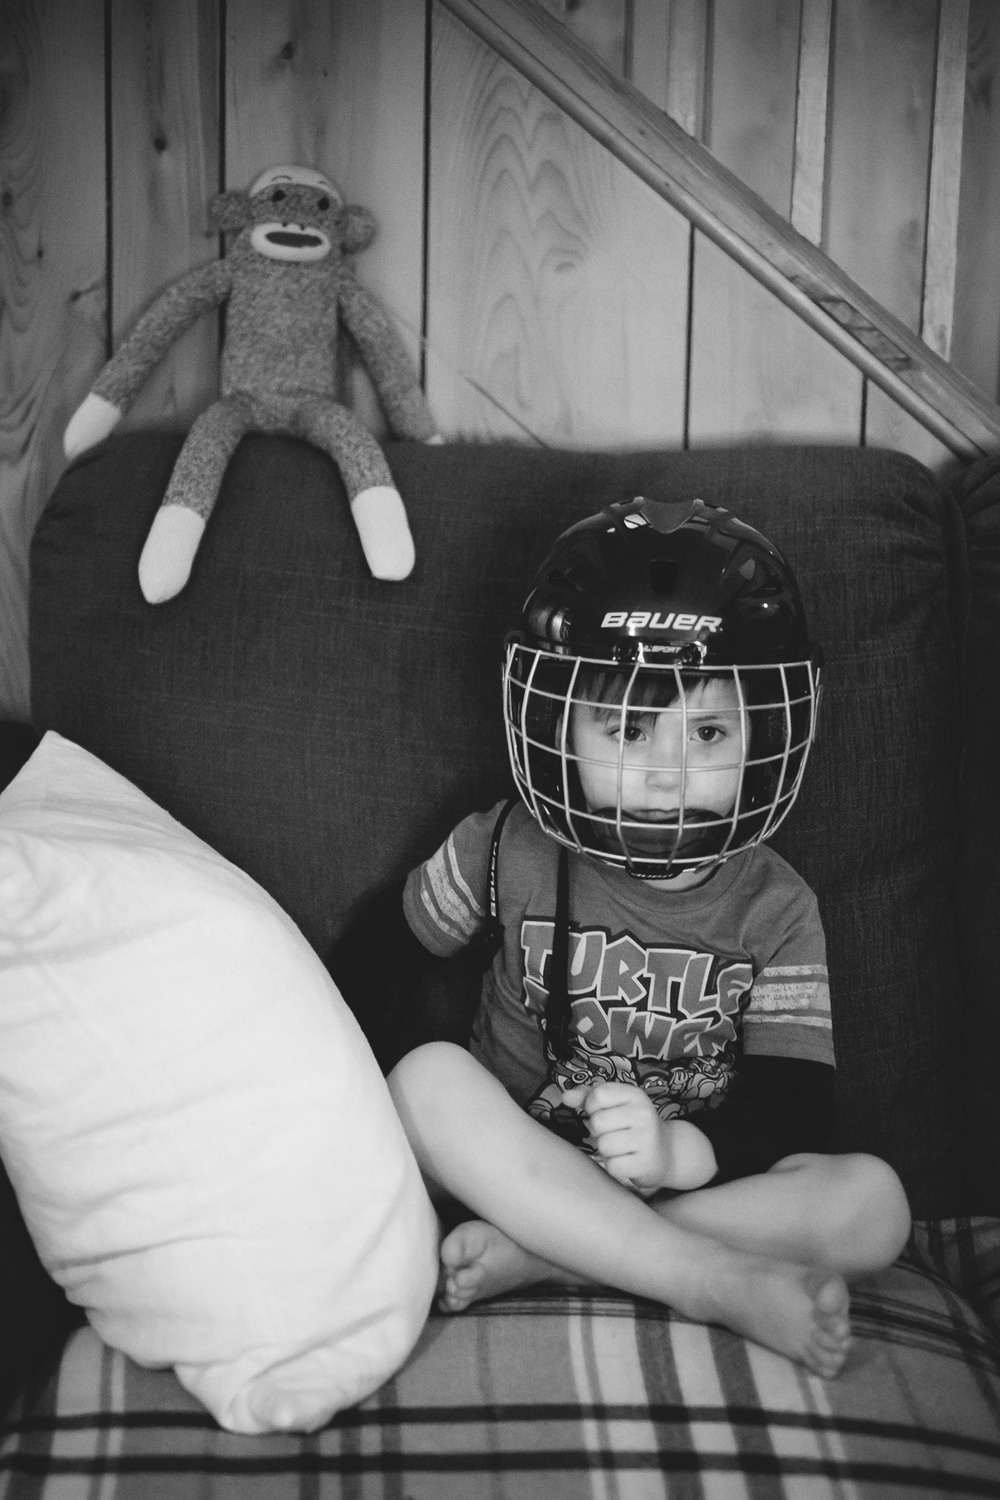 steven-h-perreault-photography-family-hunter-2016-1010.jpg